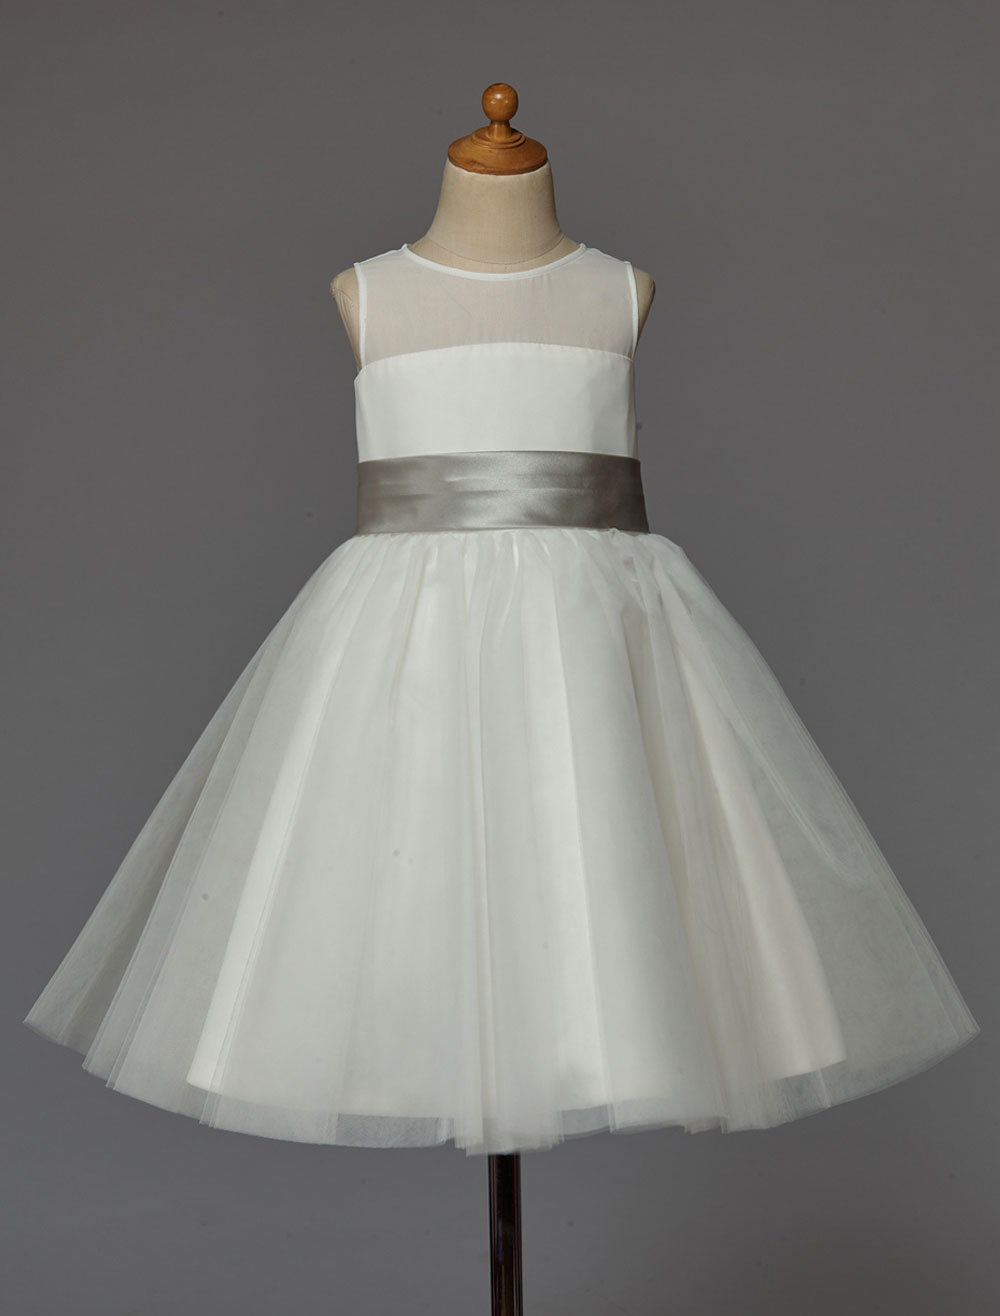 Buy Ivory Flower Girl Dress With Bow Sash Chiffon Satin for $53.19 in Milanoo store